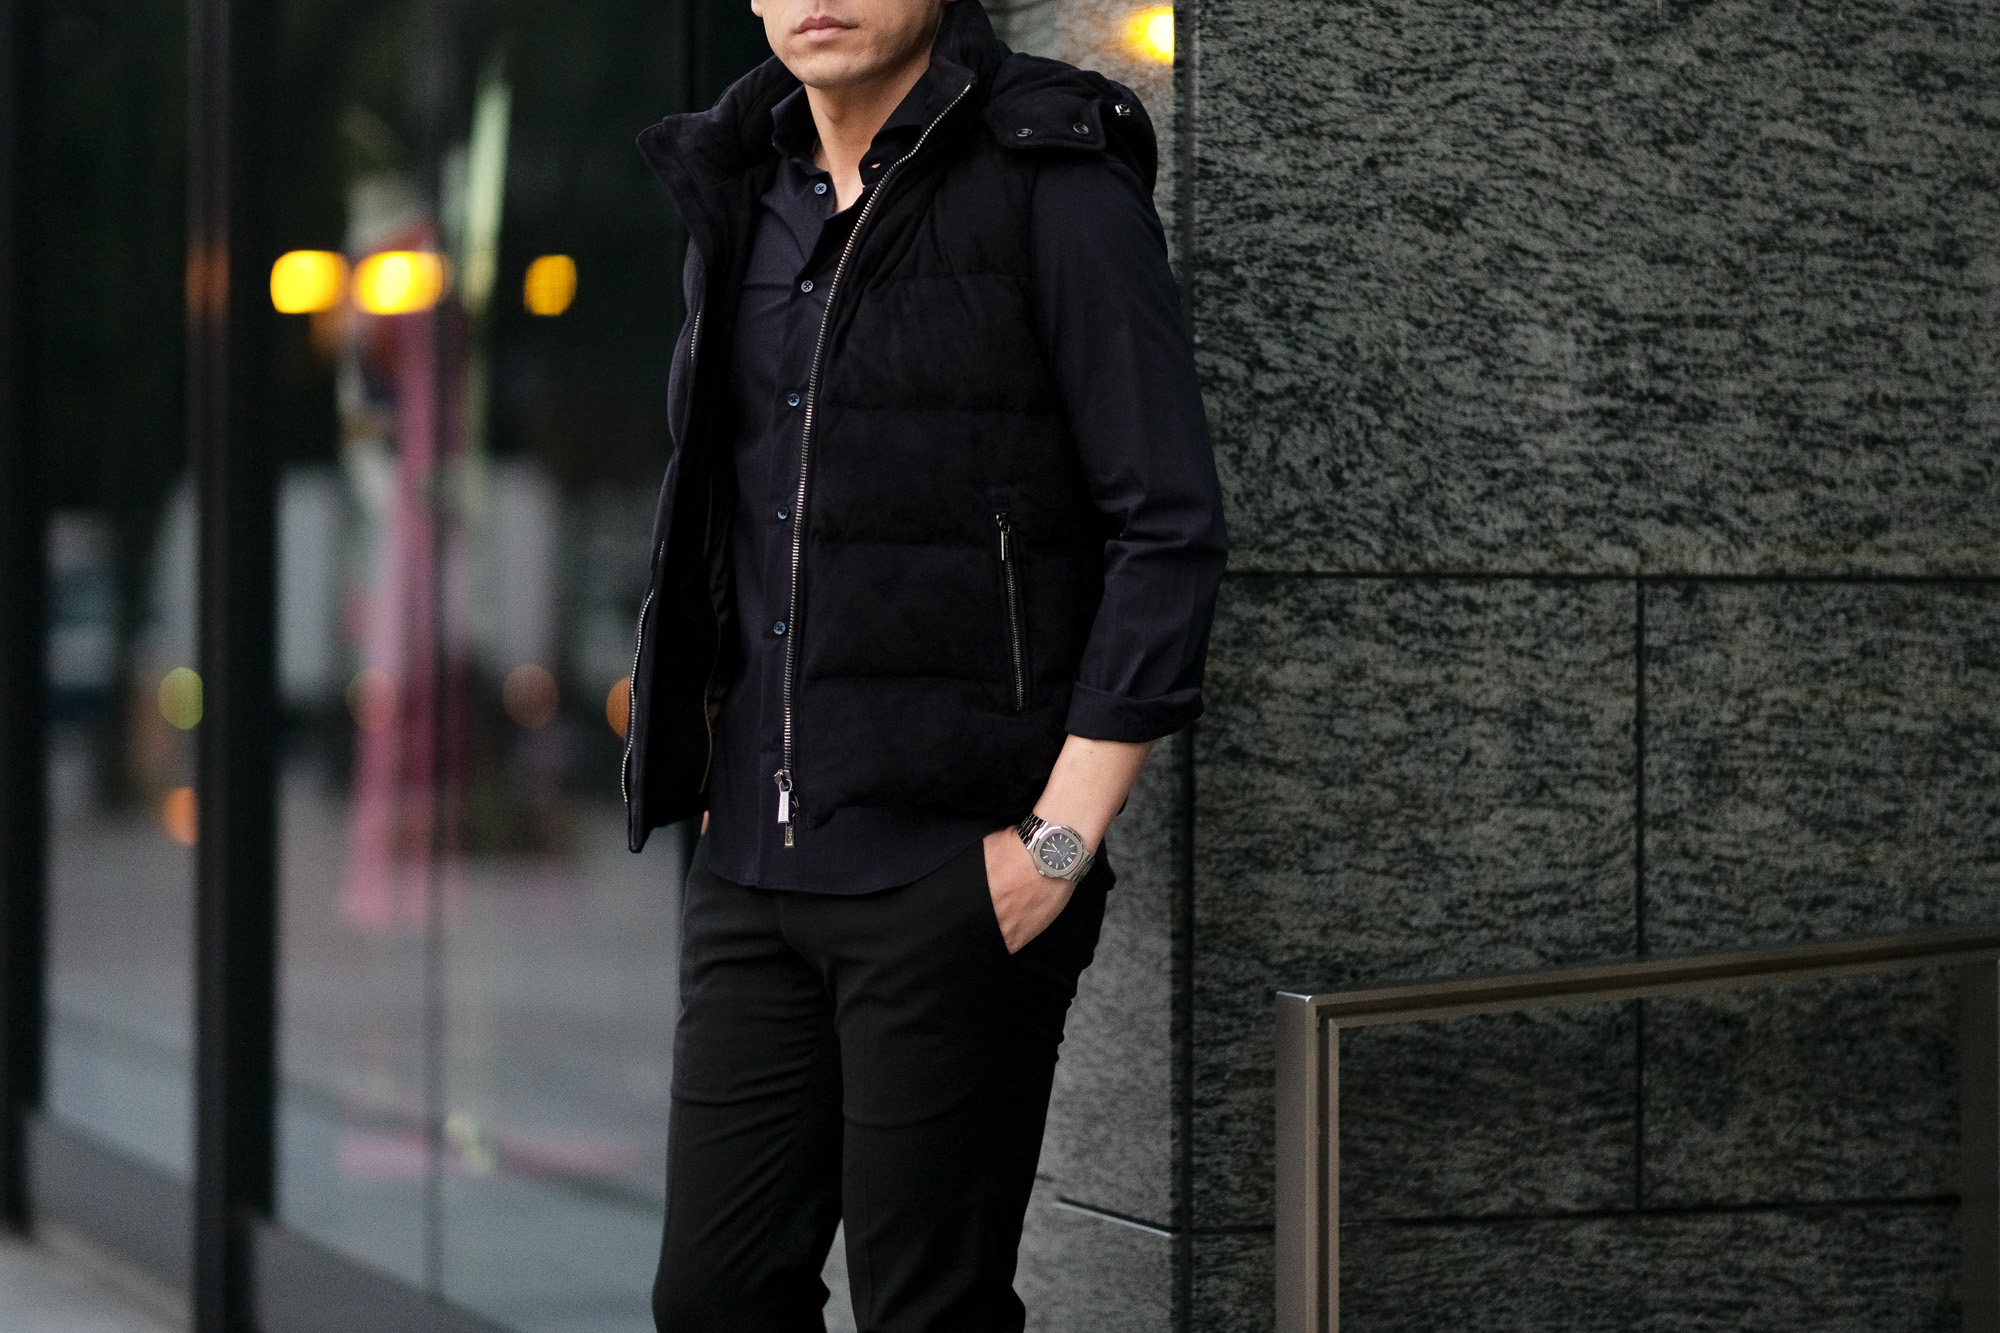 MOORER (ムーレー) FAYER-UR (フェイヤー) Suede Leather Down Vest スエードレザー ダウンベスト BLU (ネイビー) Made in italy (イタリア製) 2021 秋冬 【Alto e Diritto別注】【Special Special Special Model】【ご予約開始】愛知 名古屋 Alto e Diritto altoediritto アルトエデリット レザーベスト